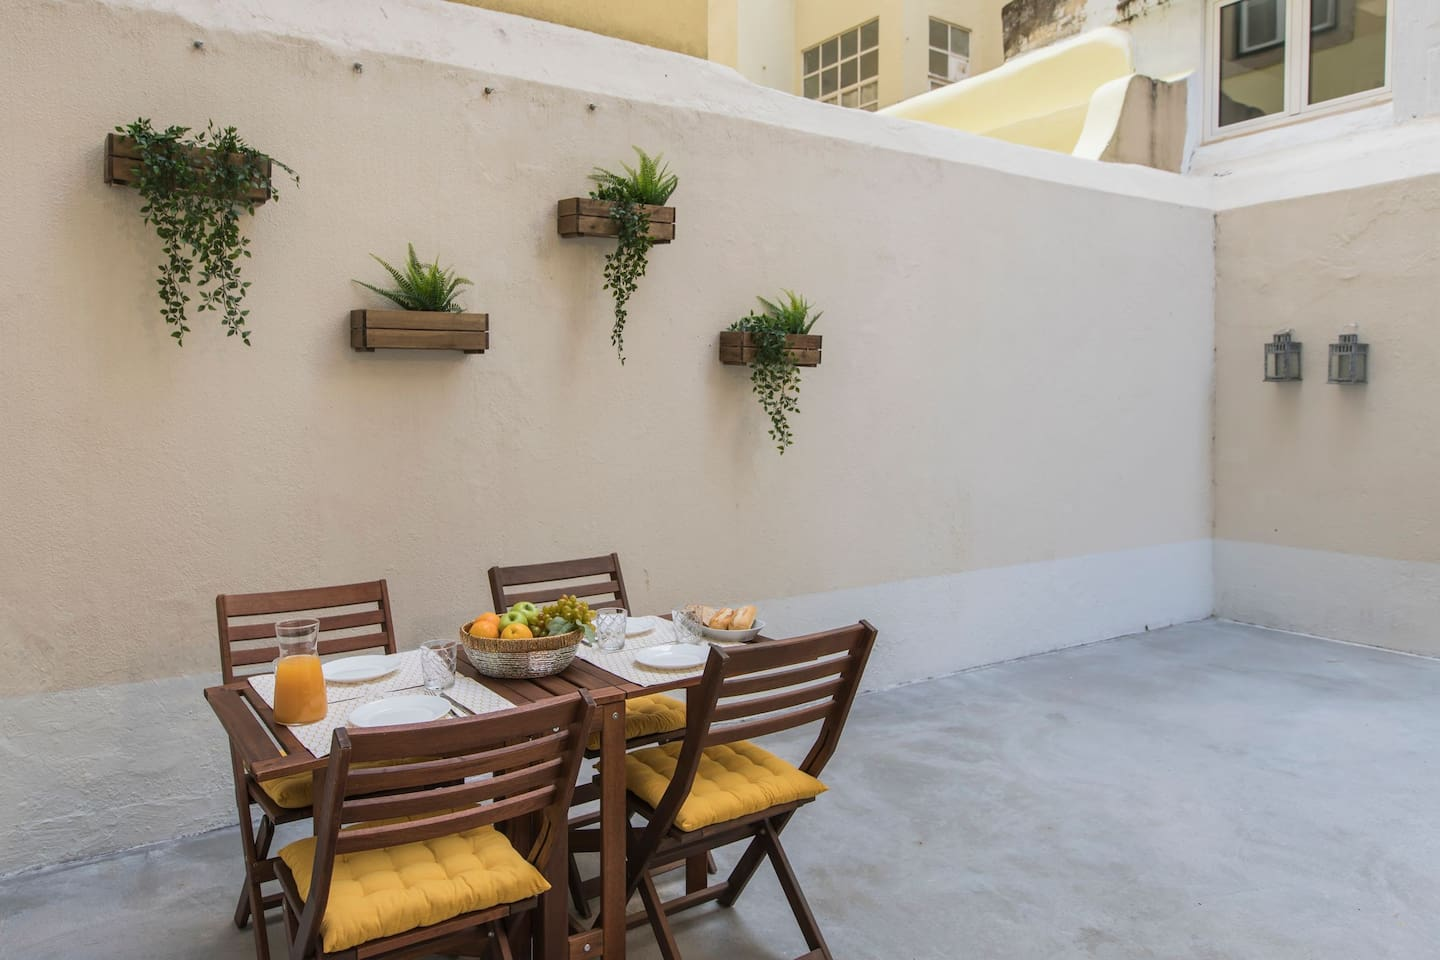 Your own private patio- perfect for breakfast with your loved ones!